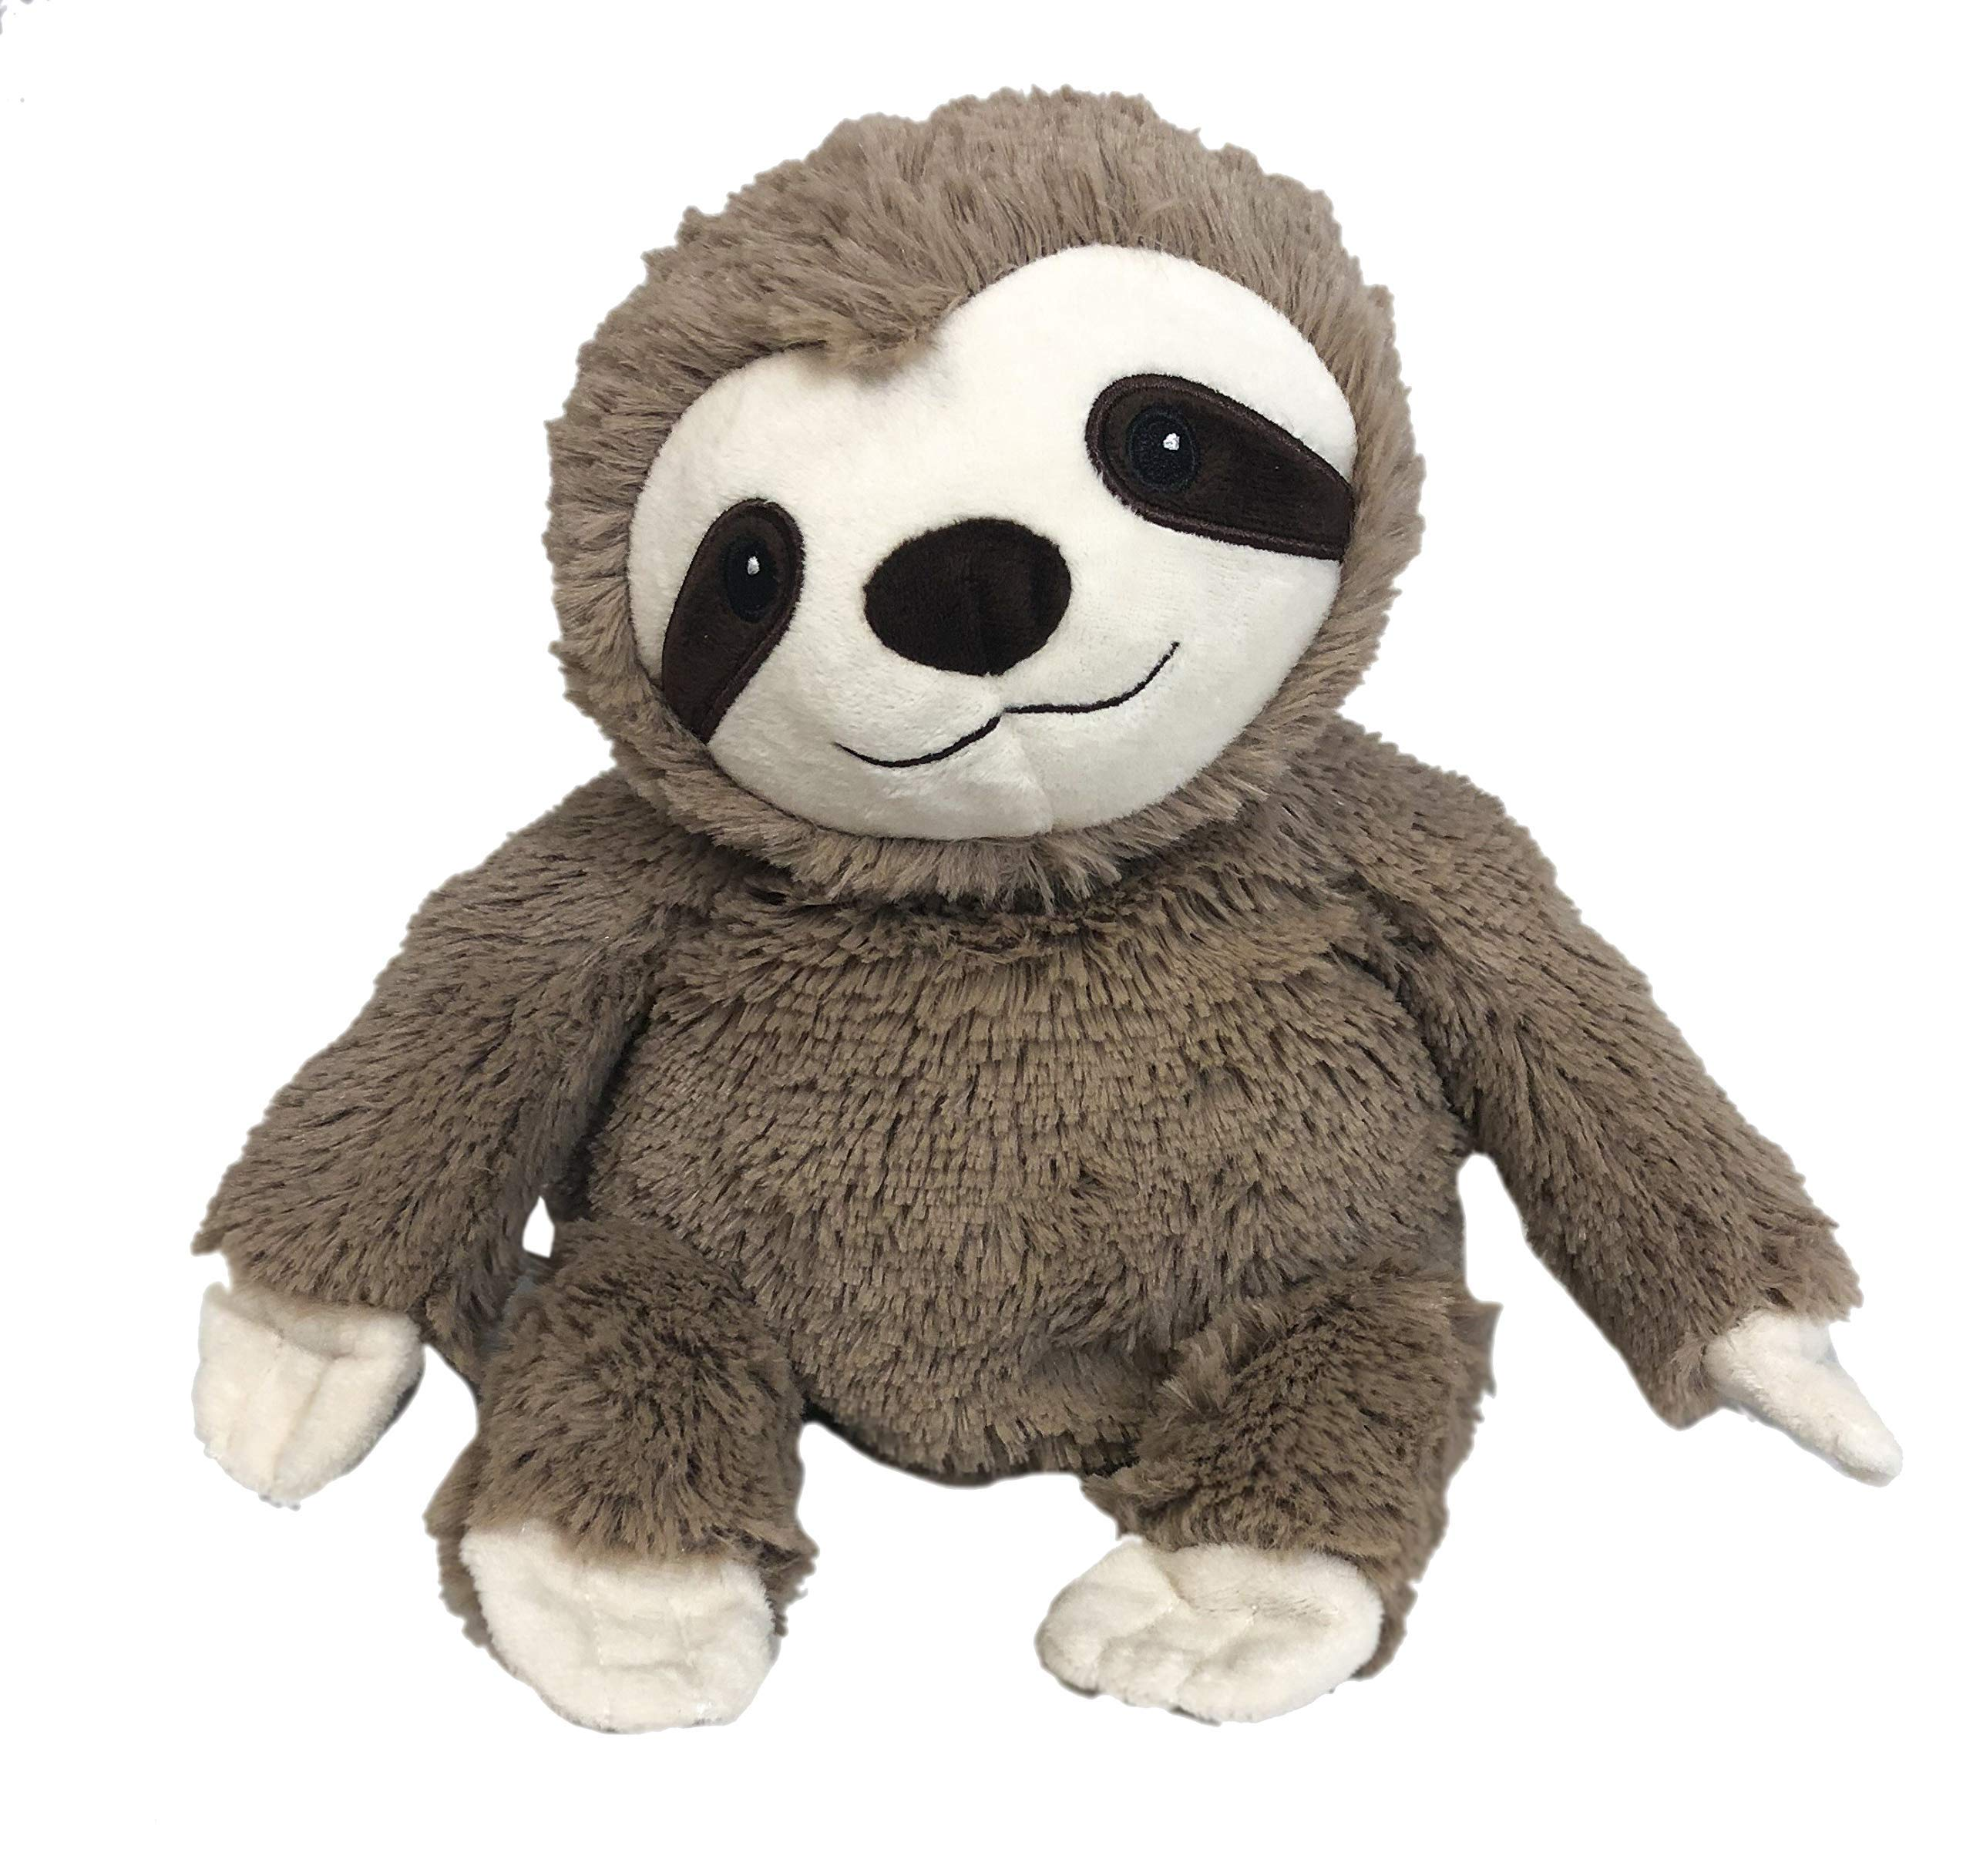 Warmies® Microwavable French Lavender Scented Plush Sloth by Intelex